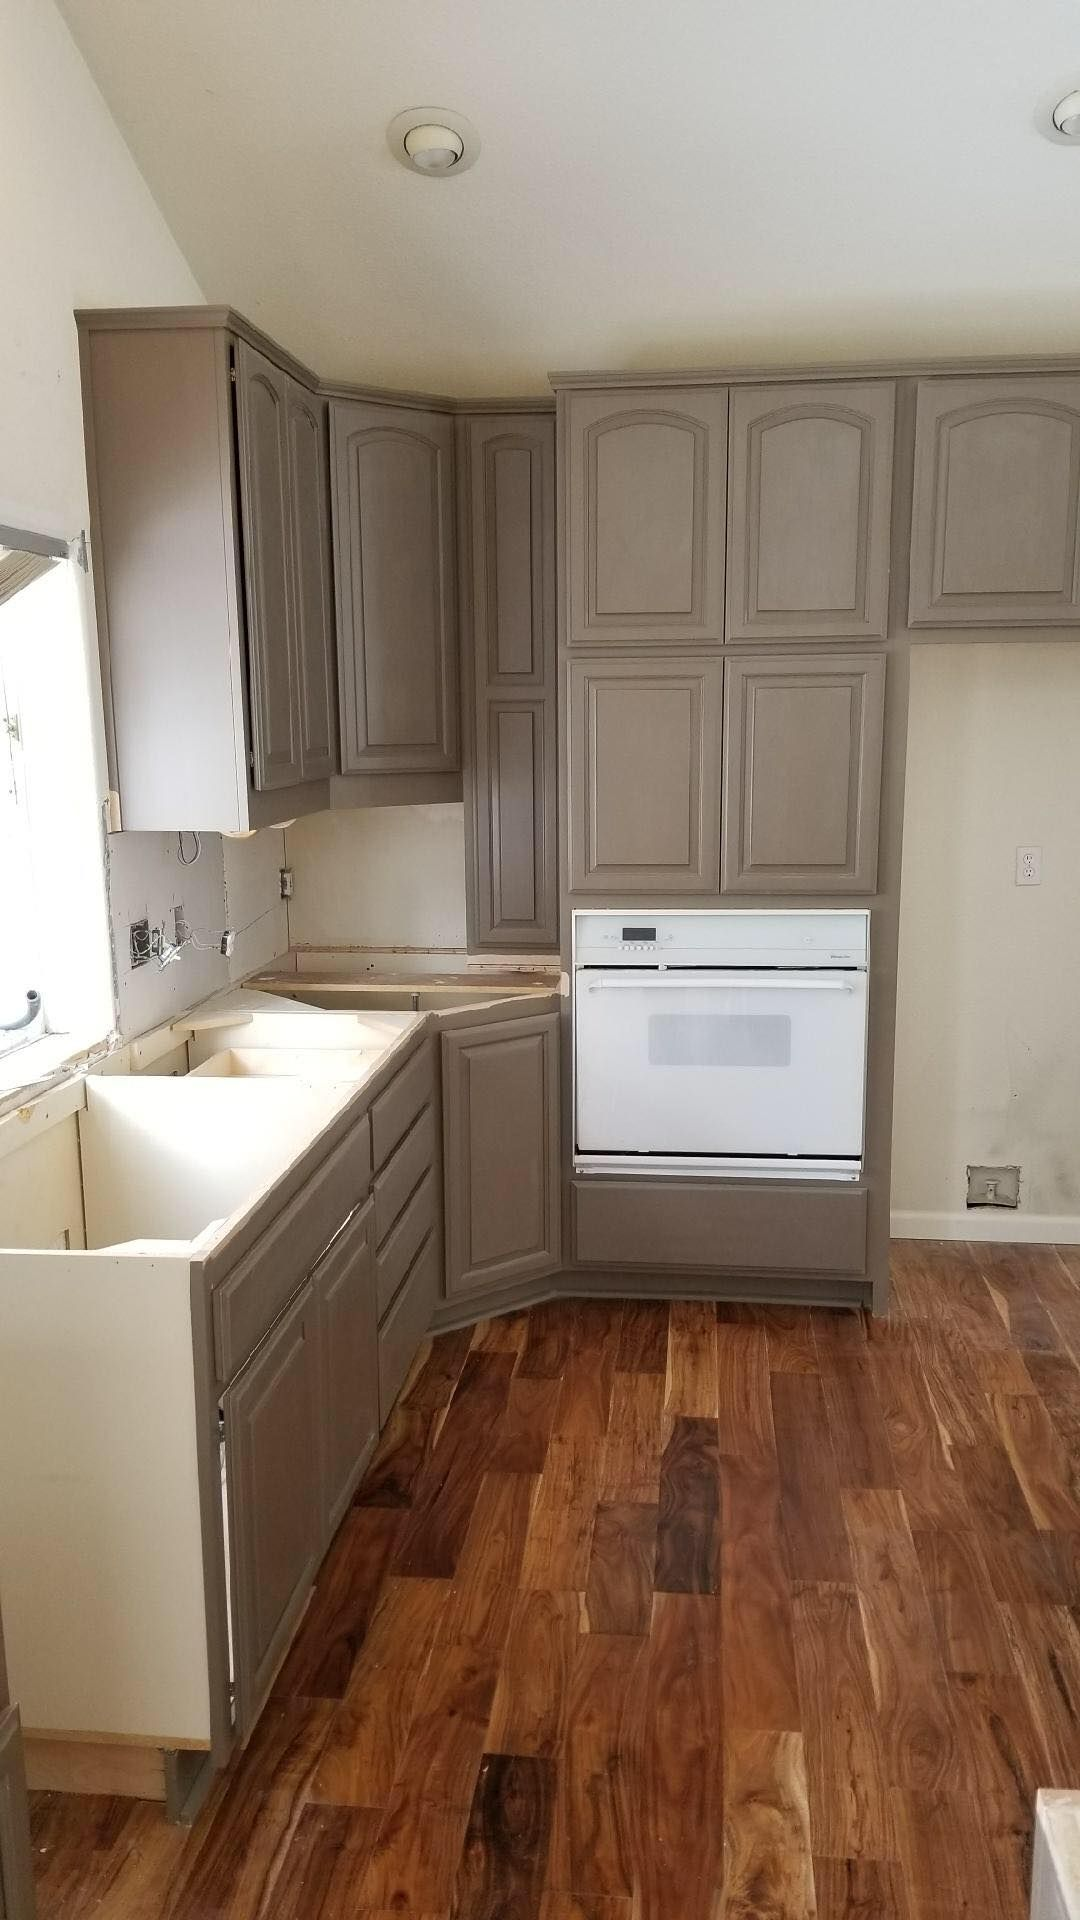 Painted Cabinets With Stained Hood And Range Paneling Stained Kitchen Cabinets Cabinets And Countertops Kitchen Cabinets